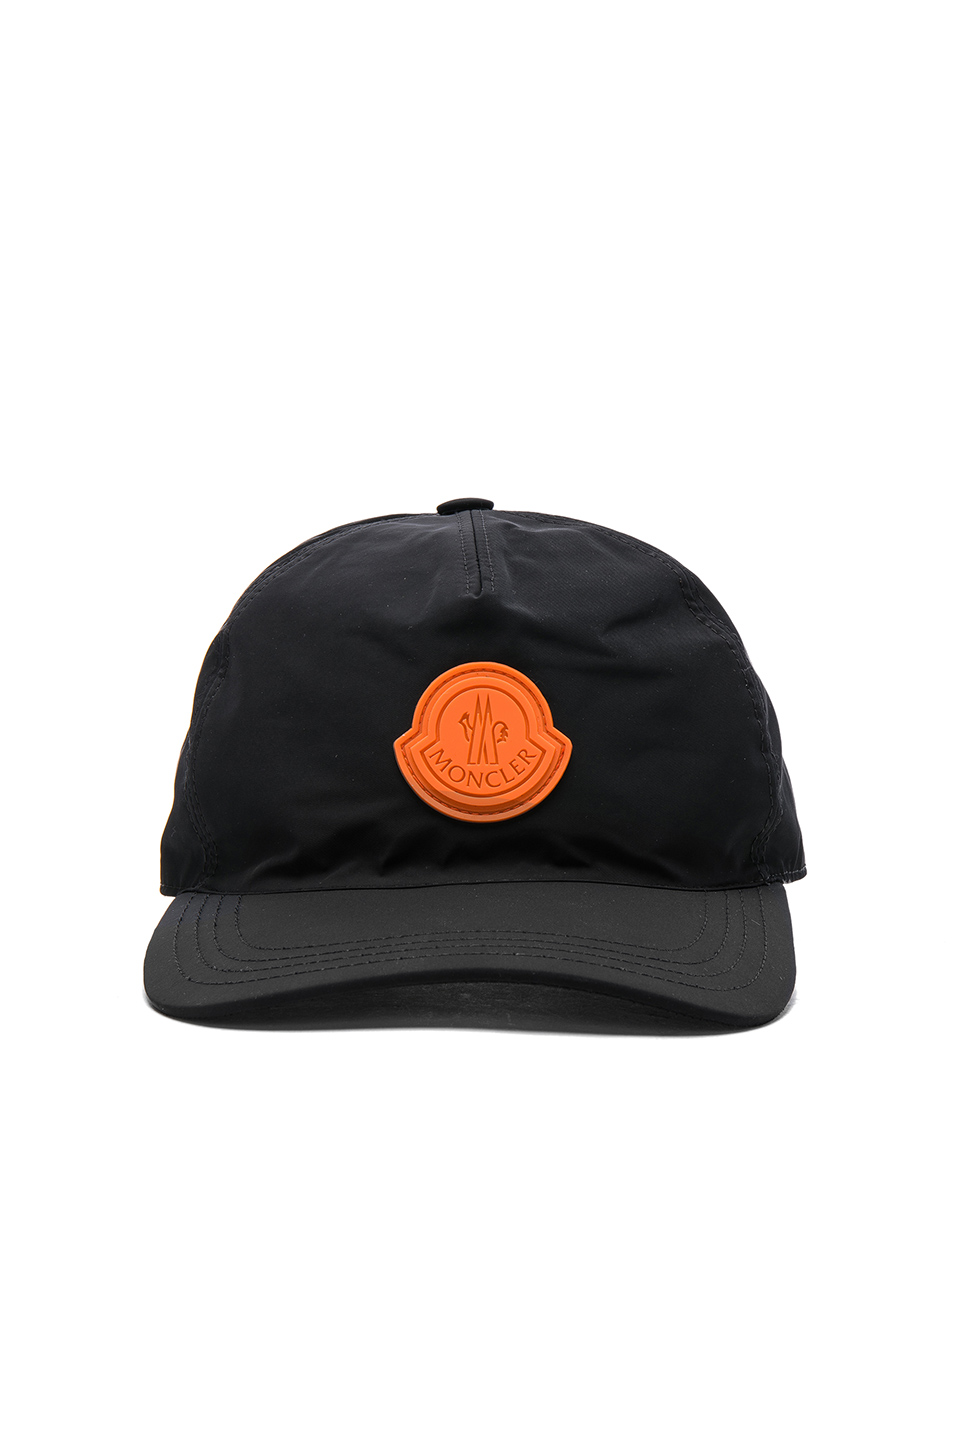 Moncler x Off White Cap in Black